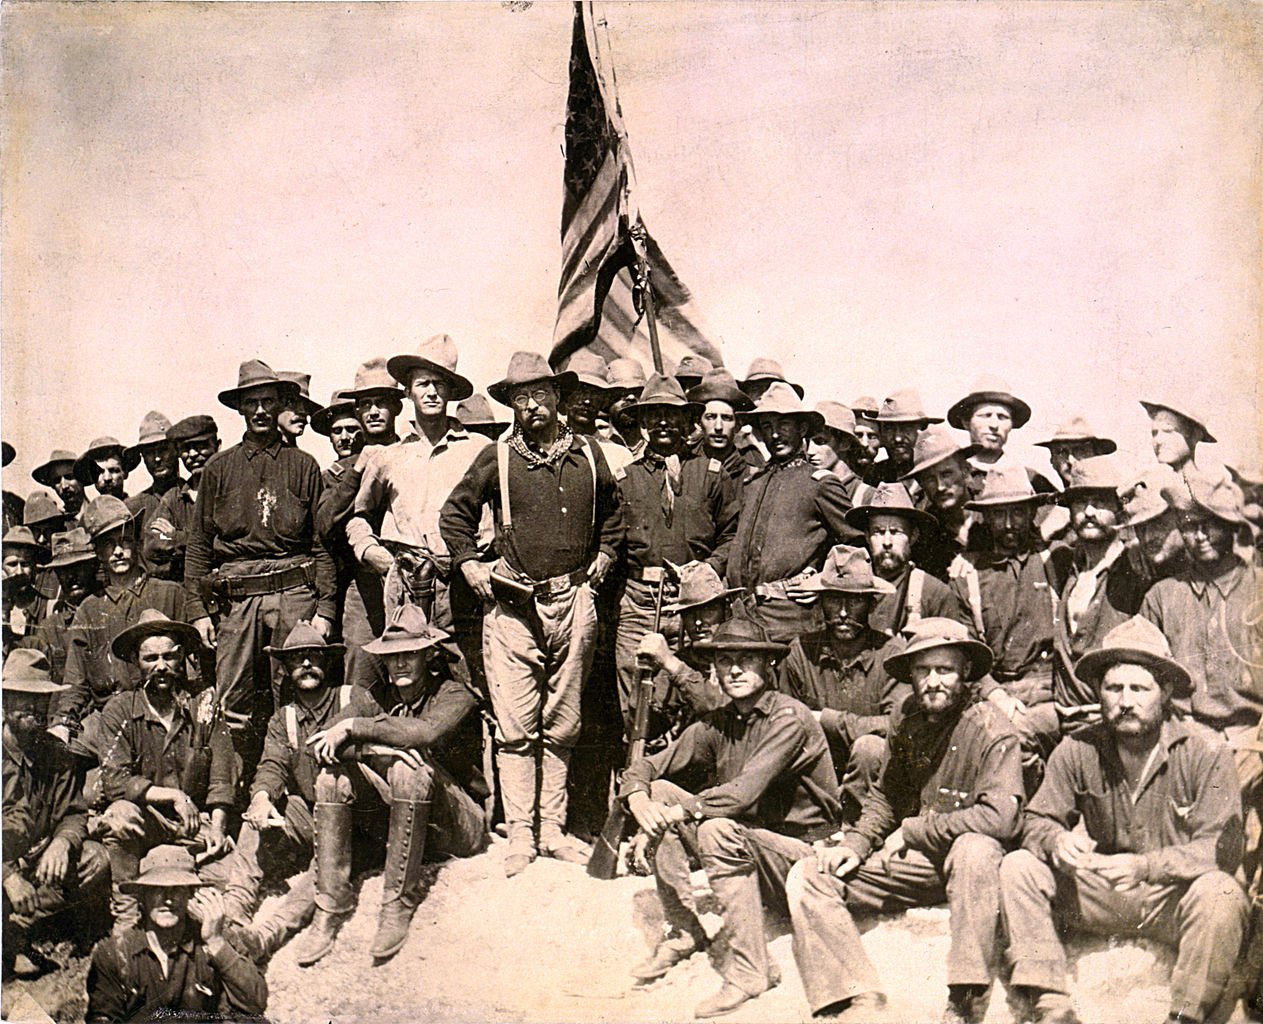 Theodore Roosevelt and the Rough Riders (Library of Congress)